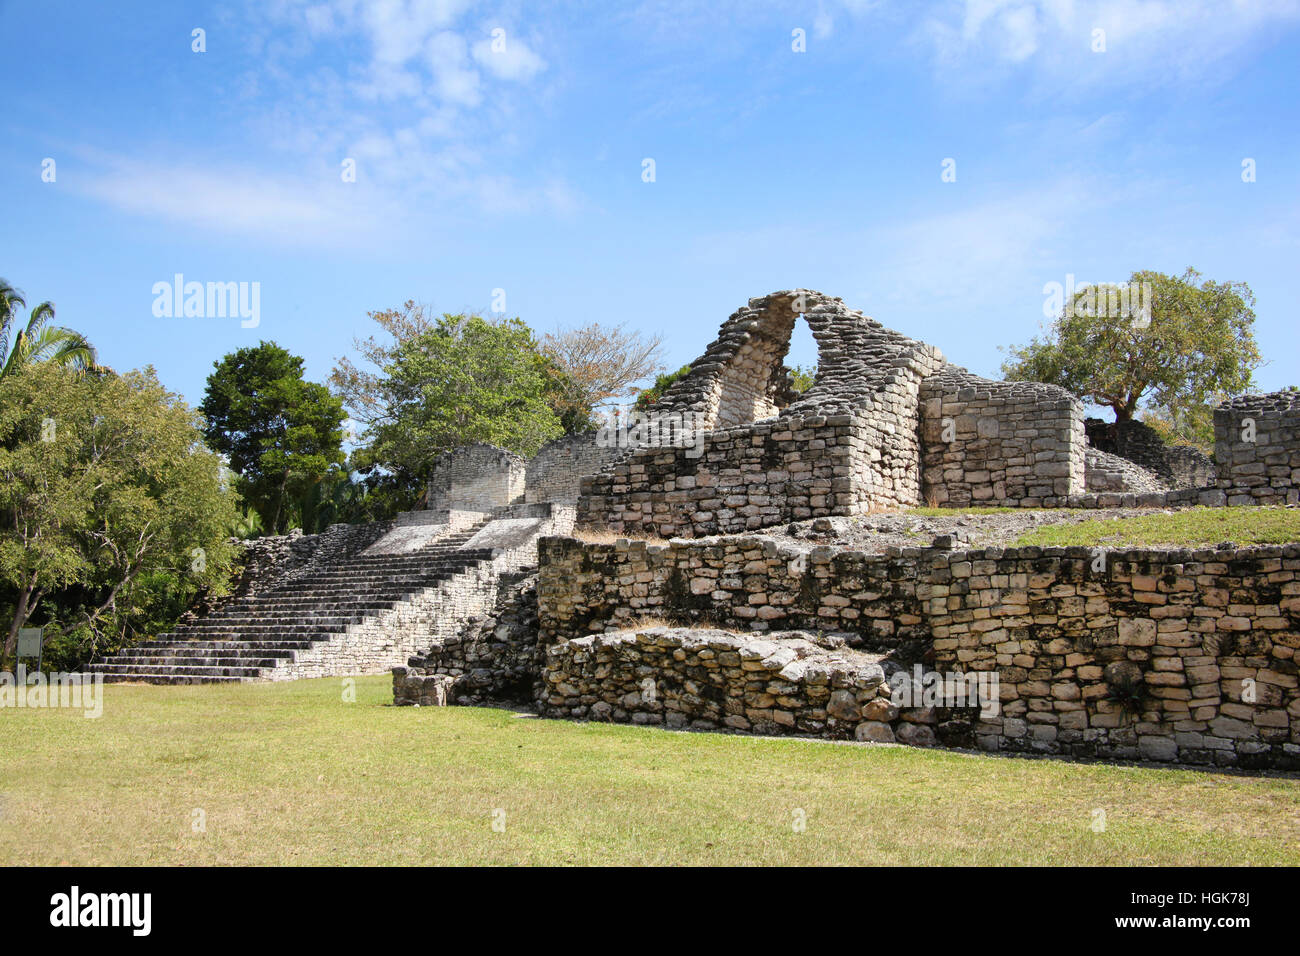 Kohunlich is a large archaeological site of the pre-Columbian Maya civilization, Yucatán Peninsula, Quintana - Stock Image